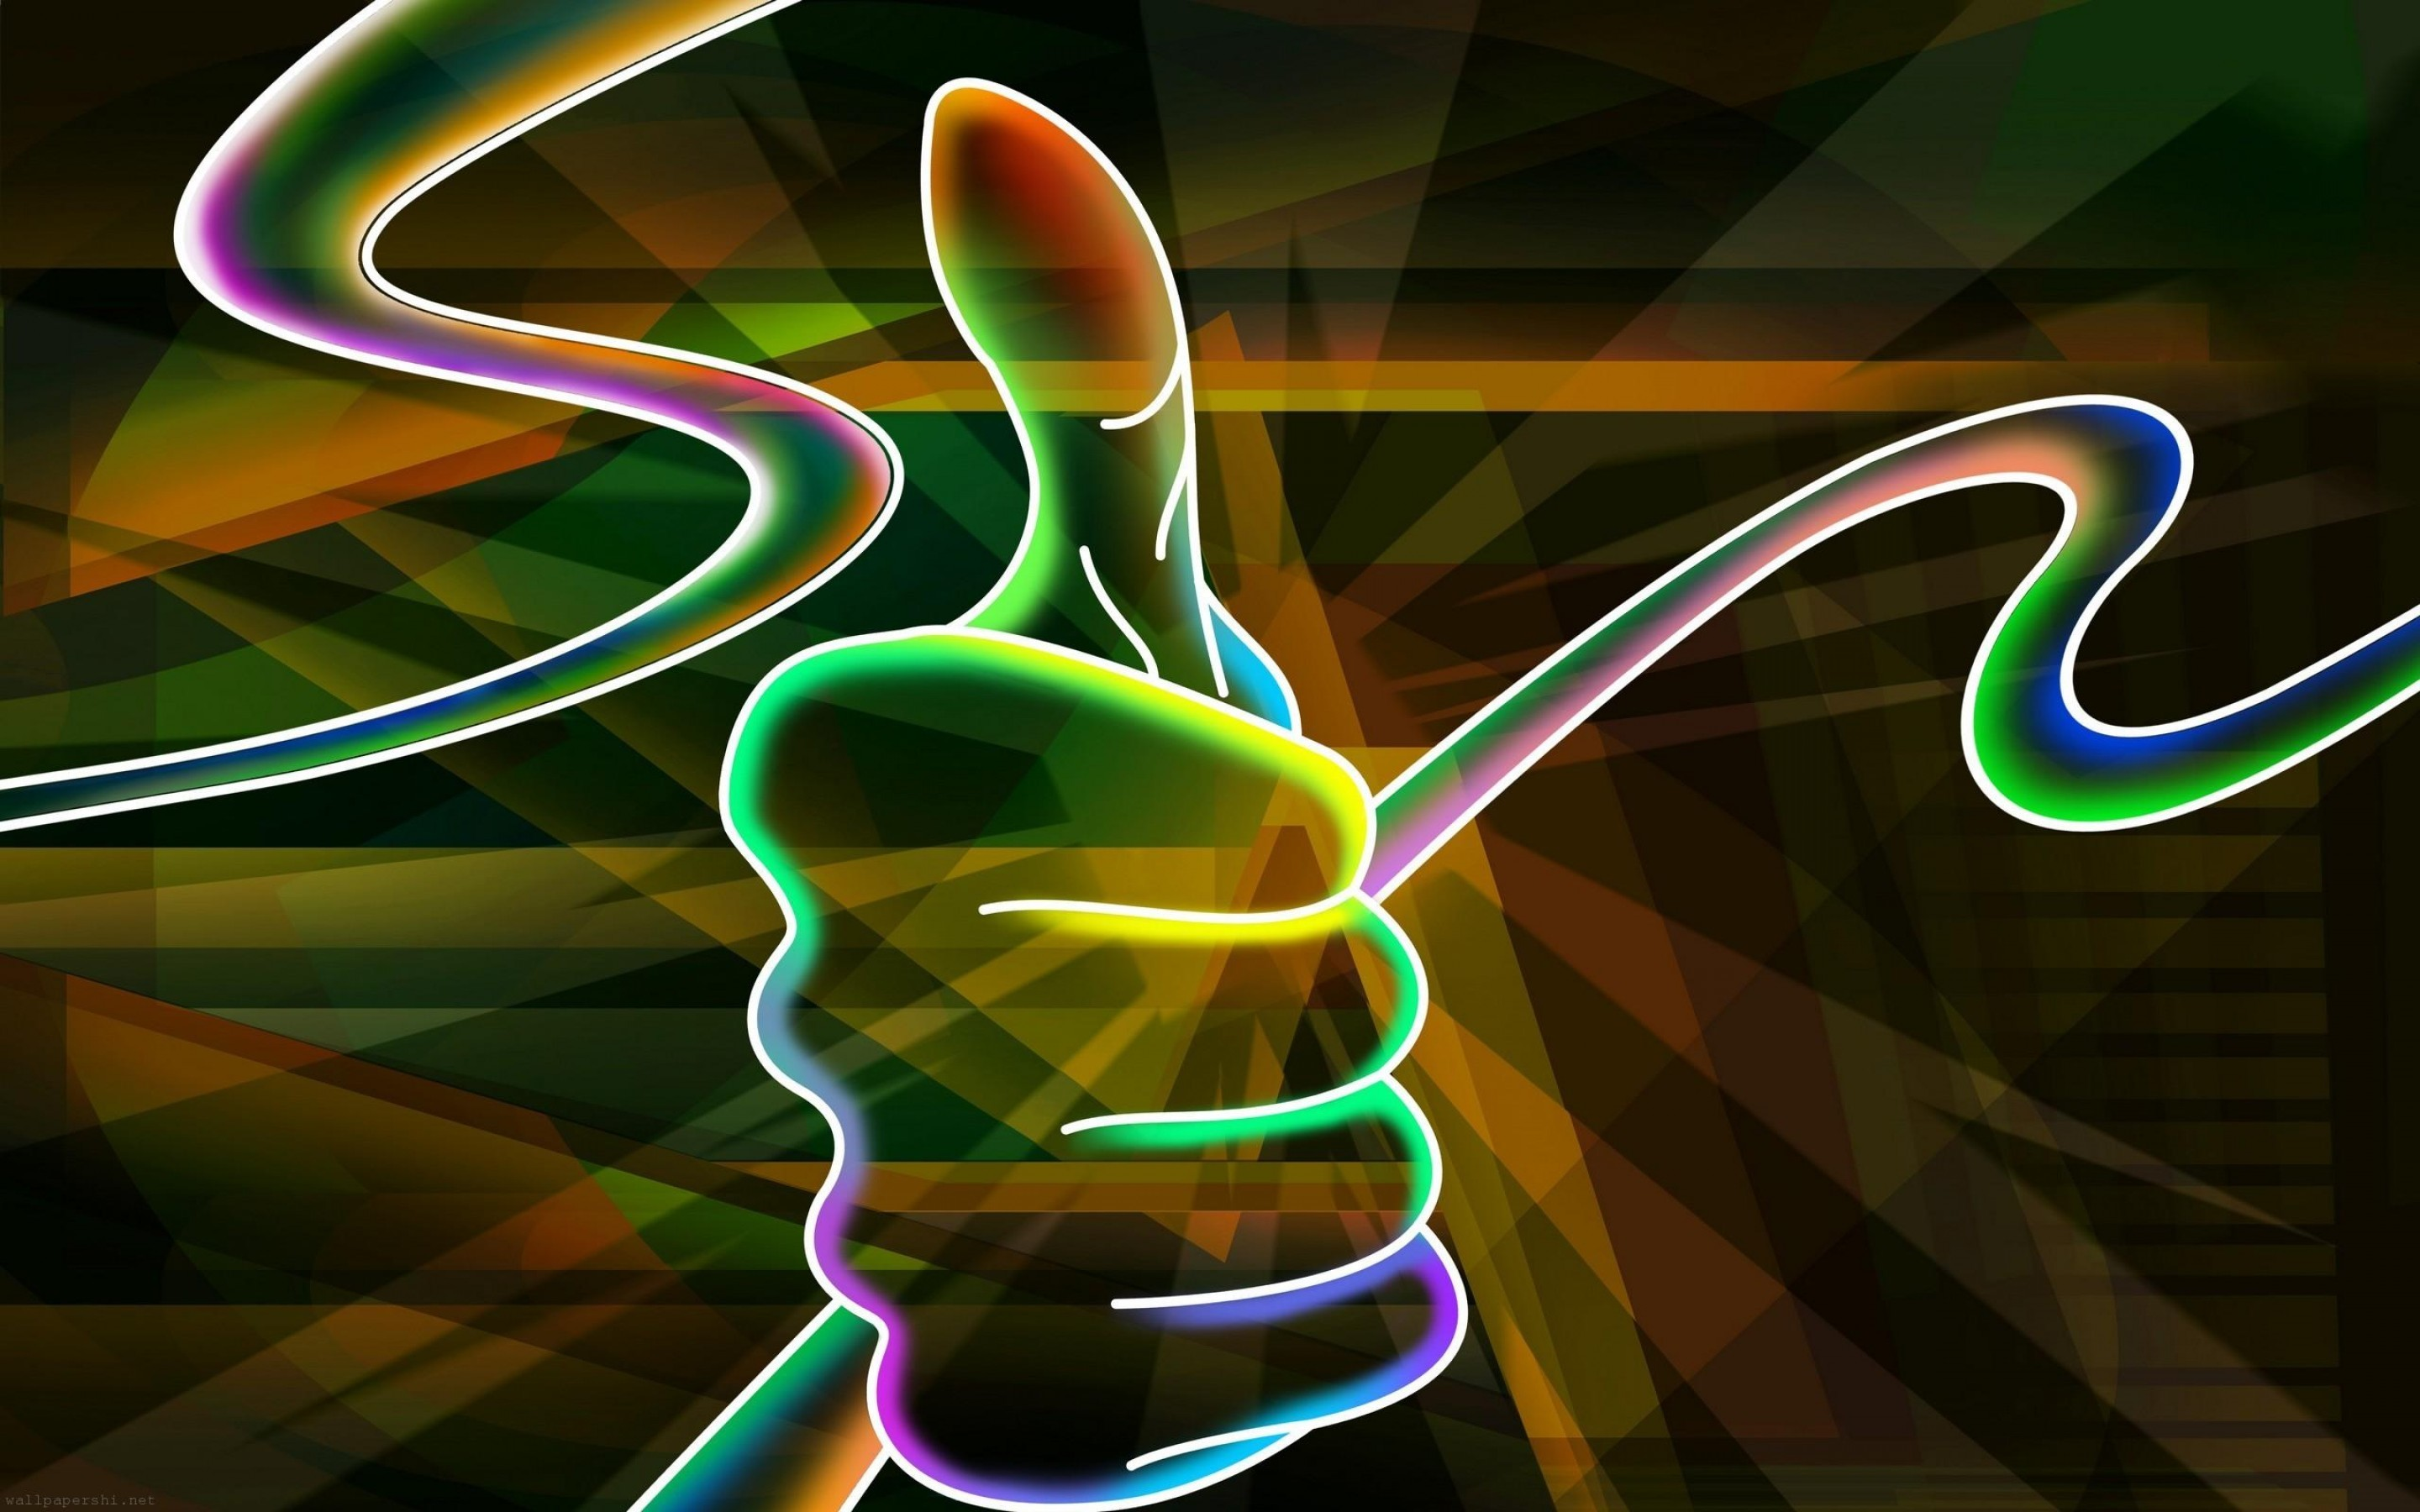 Colorful Wallpaper 3d Free Download: Colorful 3D Wallpapers ·① WallpaperTag